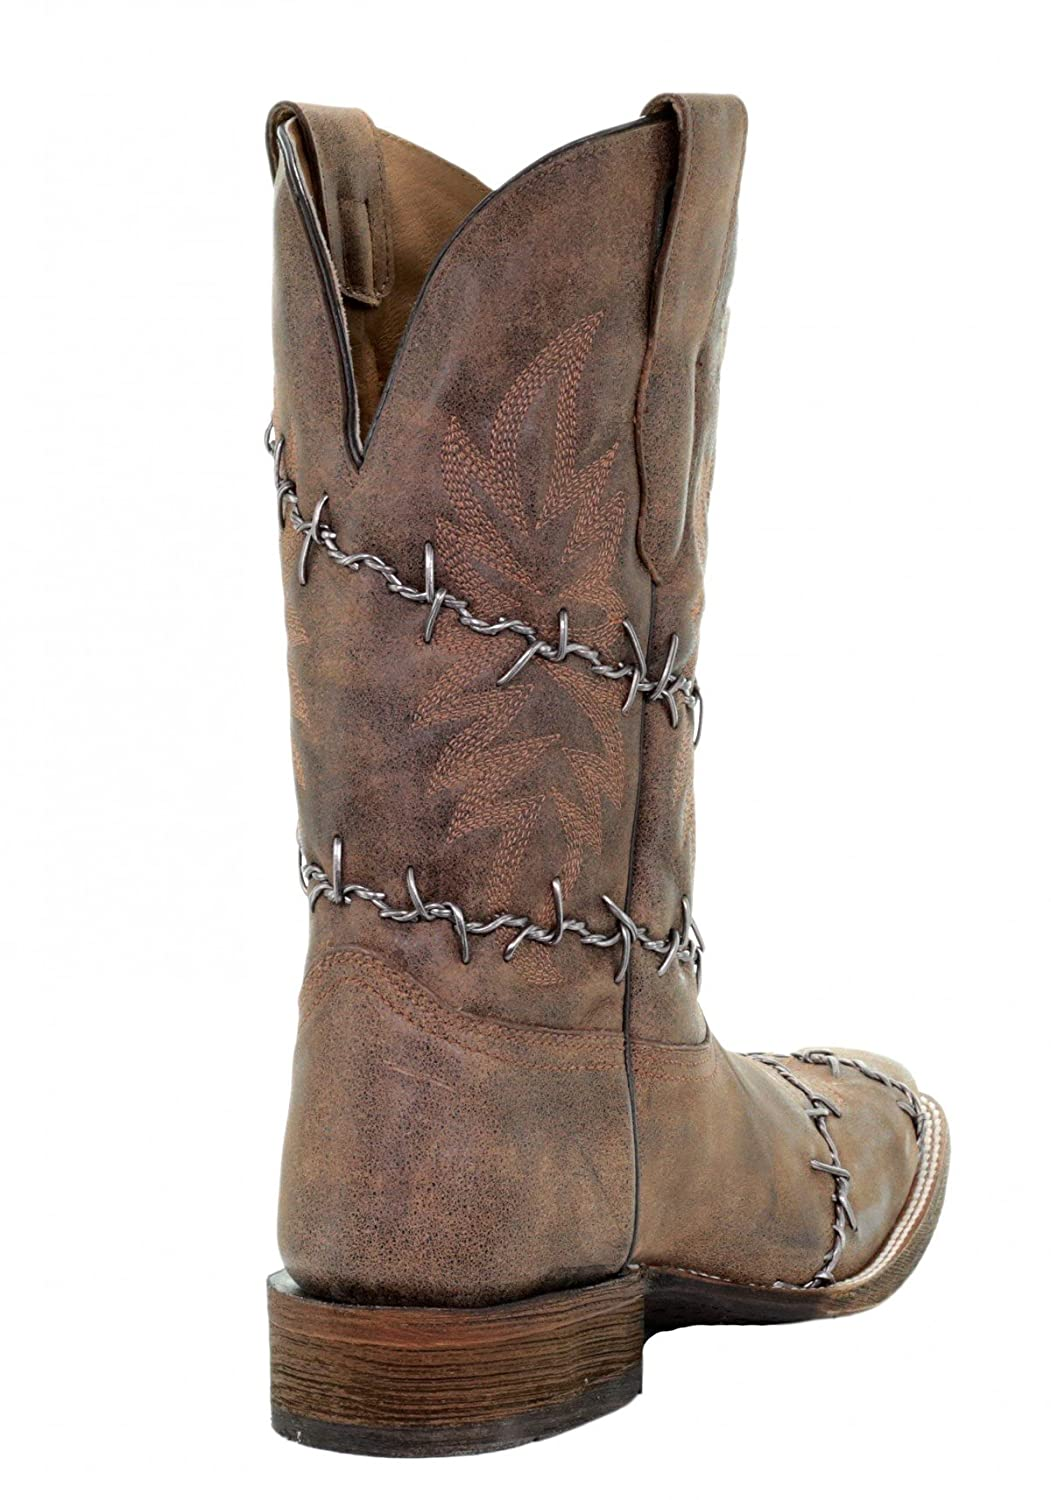 22a73687ced CORRAL A3532 Men's Barbed Wire Woven Square Toe Boots